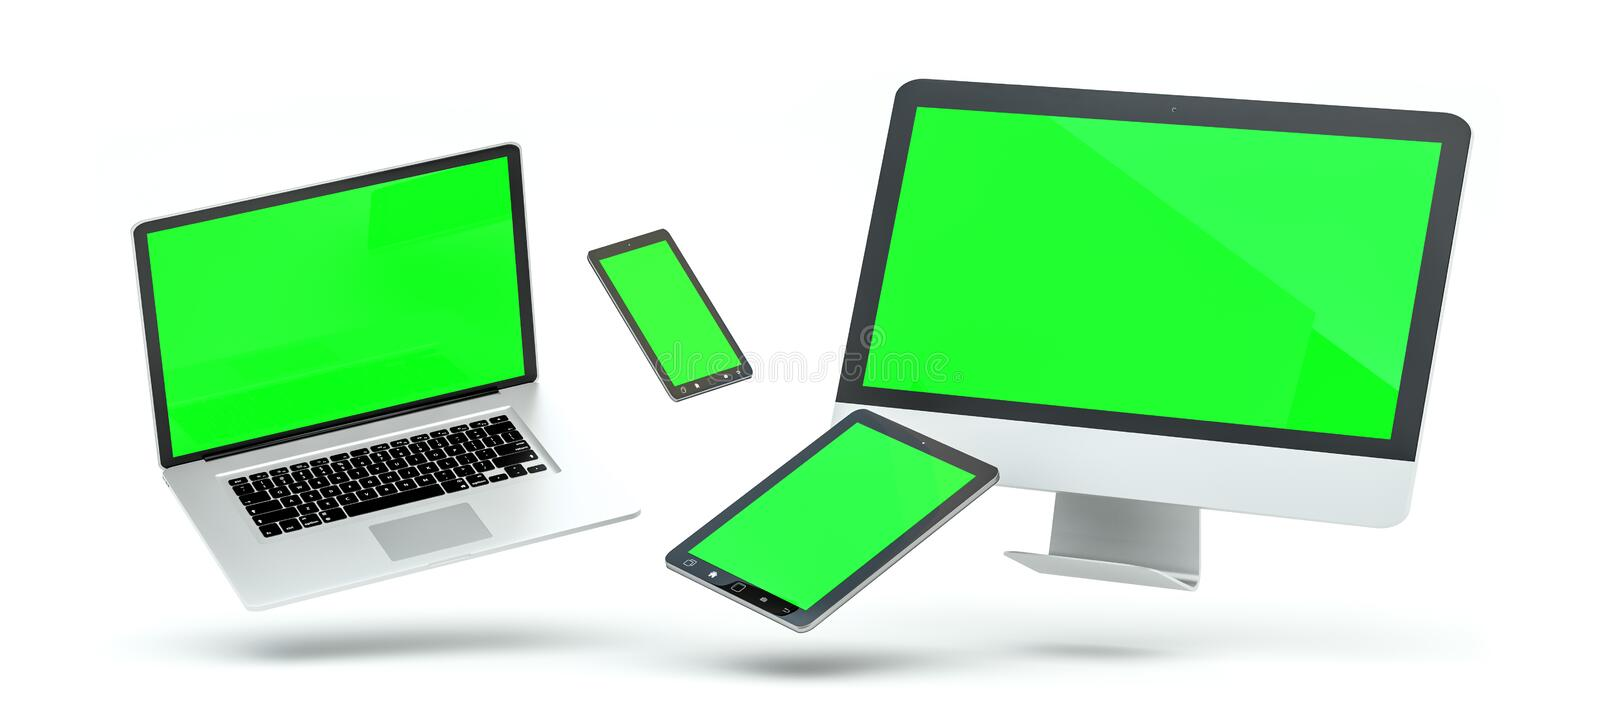 Modern computer laptop mobile phone and tablet floating 3D rendering. Modern computer laptop mobile phone and tablet floating over white background 3D rendering royalty free illustration